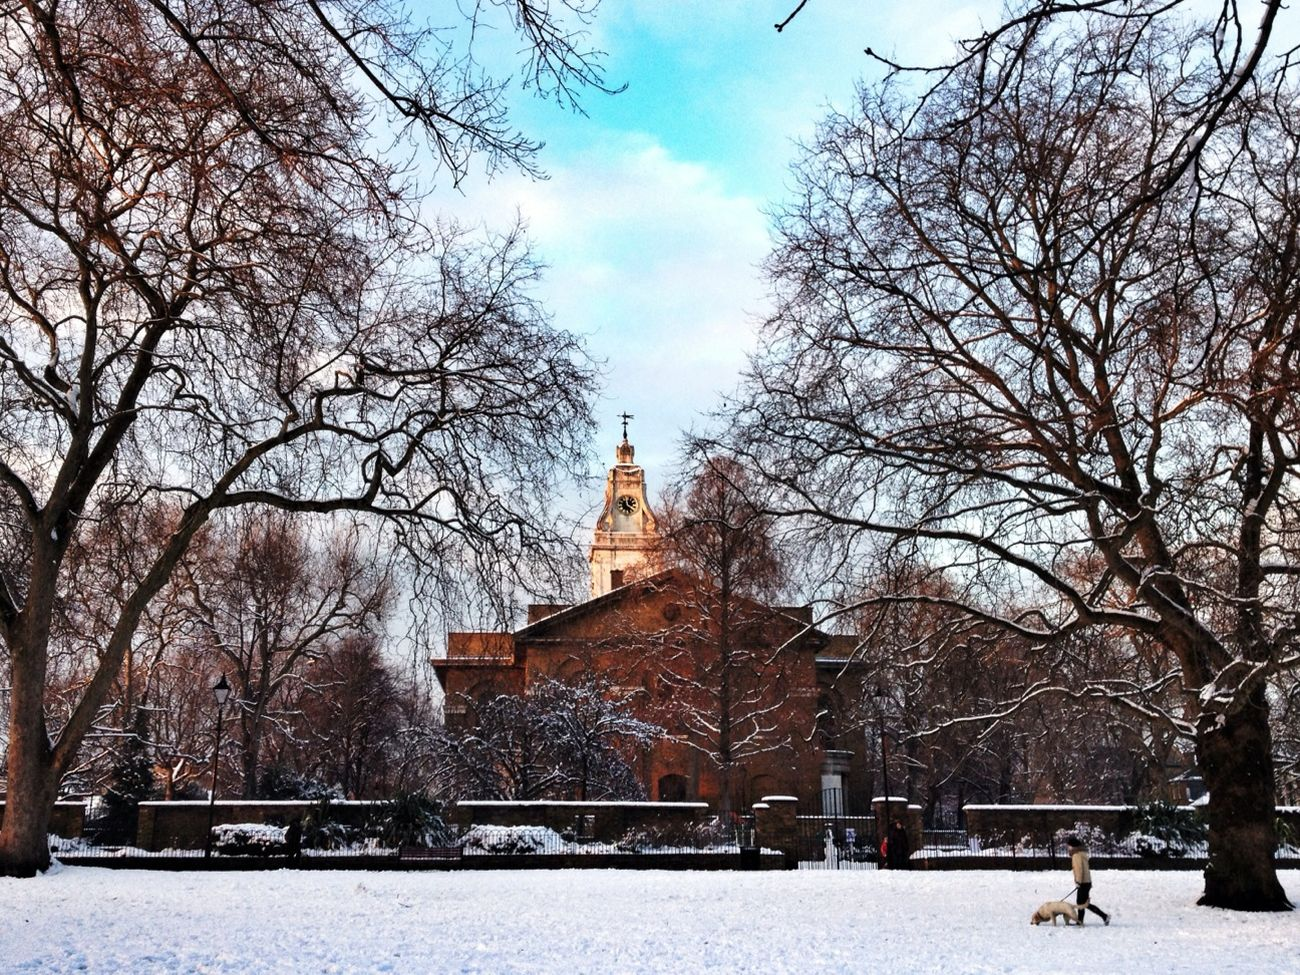 A lady walks her dog through the snow-covered St John's Gardens in Hackney, London.